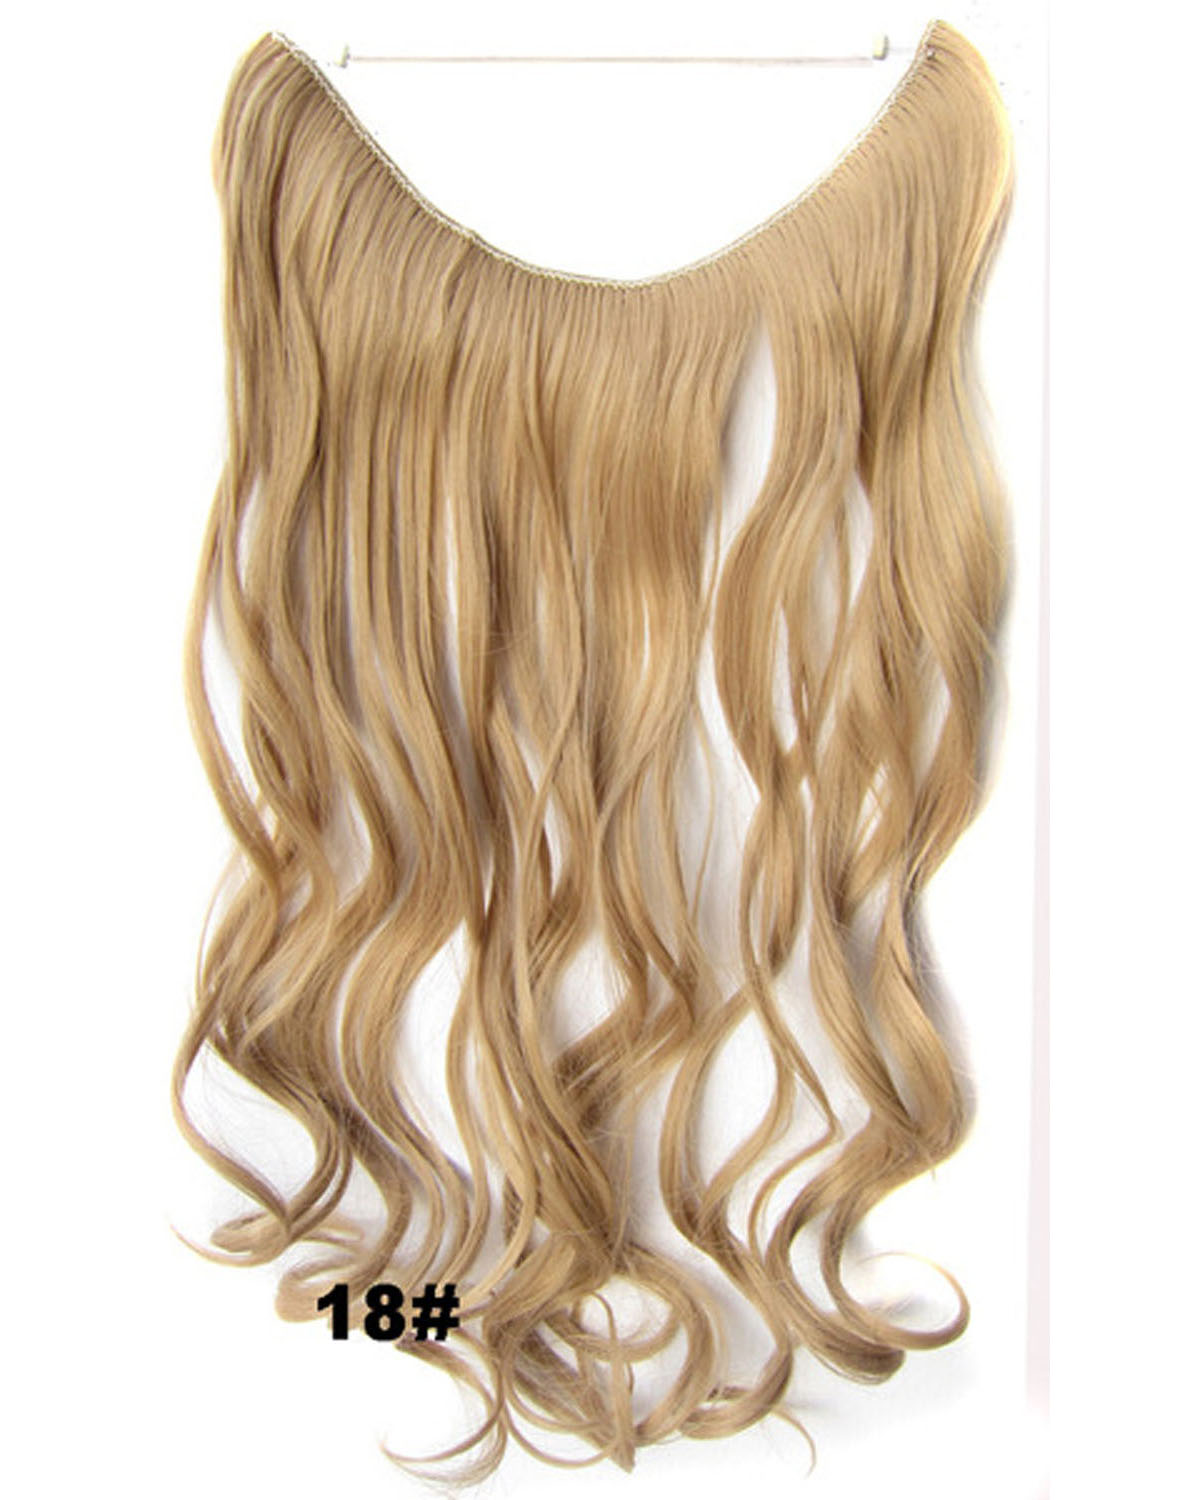 22 Inch Silky Curly and Long Miracle One Piece Miracle Wire Flip in Synthetic Hair Extension 18#